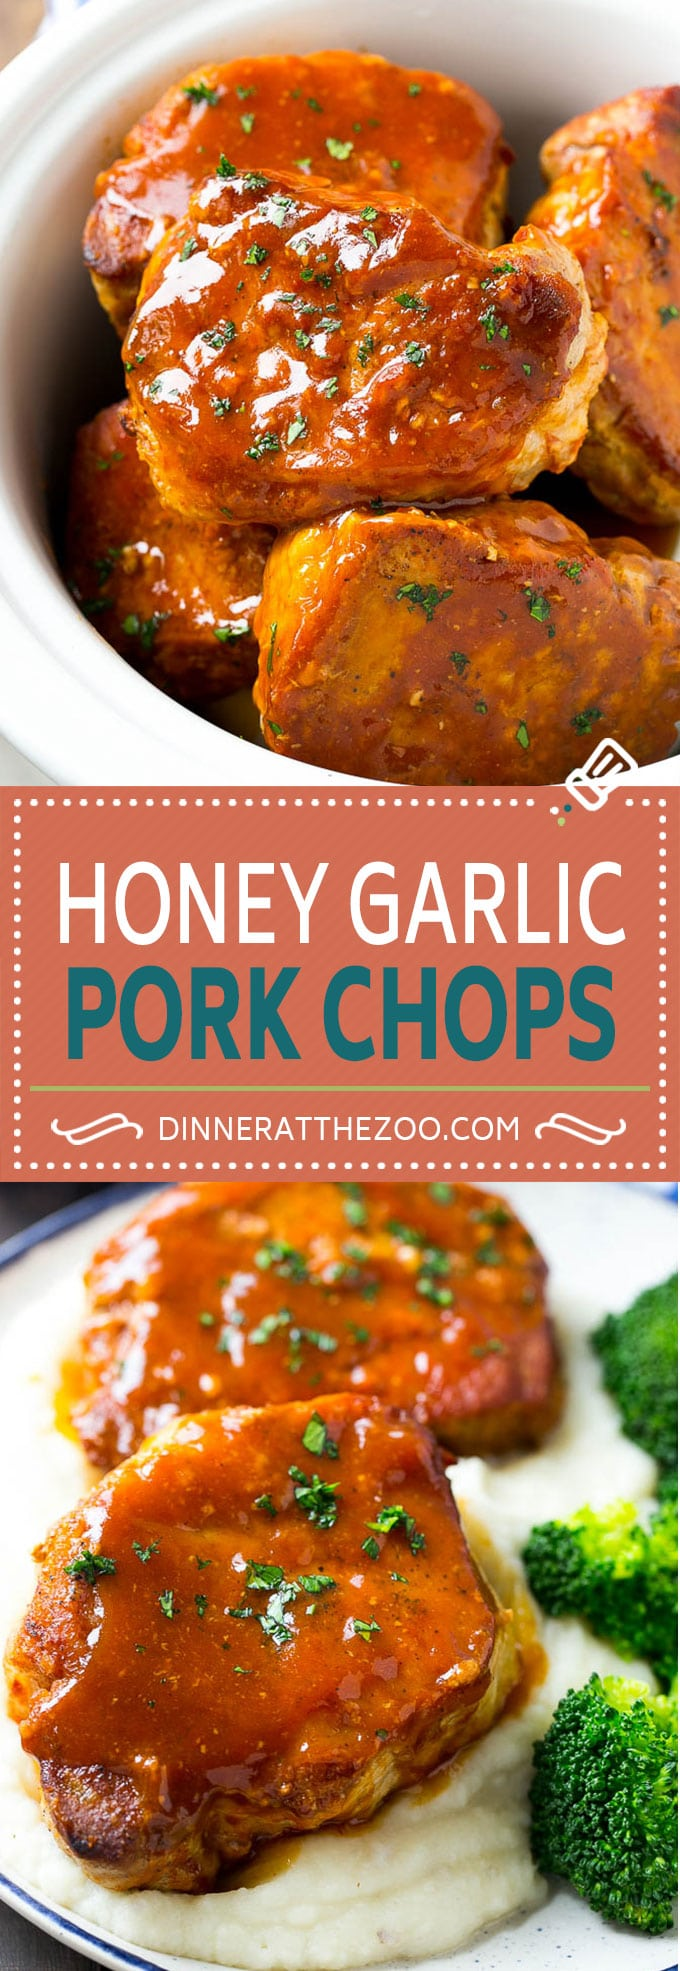 Honey Garlic Pork Chops Slow Cooker Dinner At The Zoo